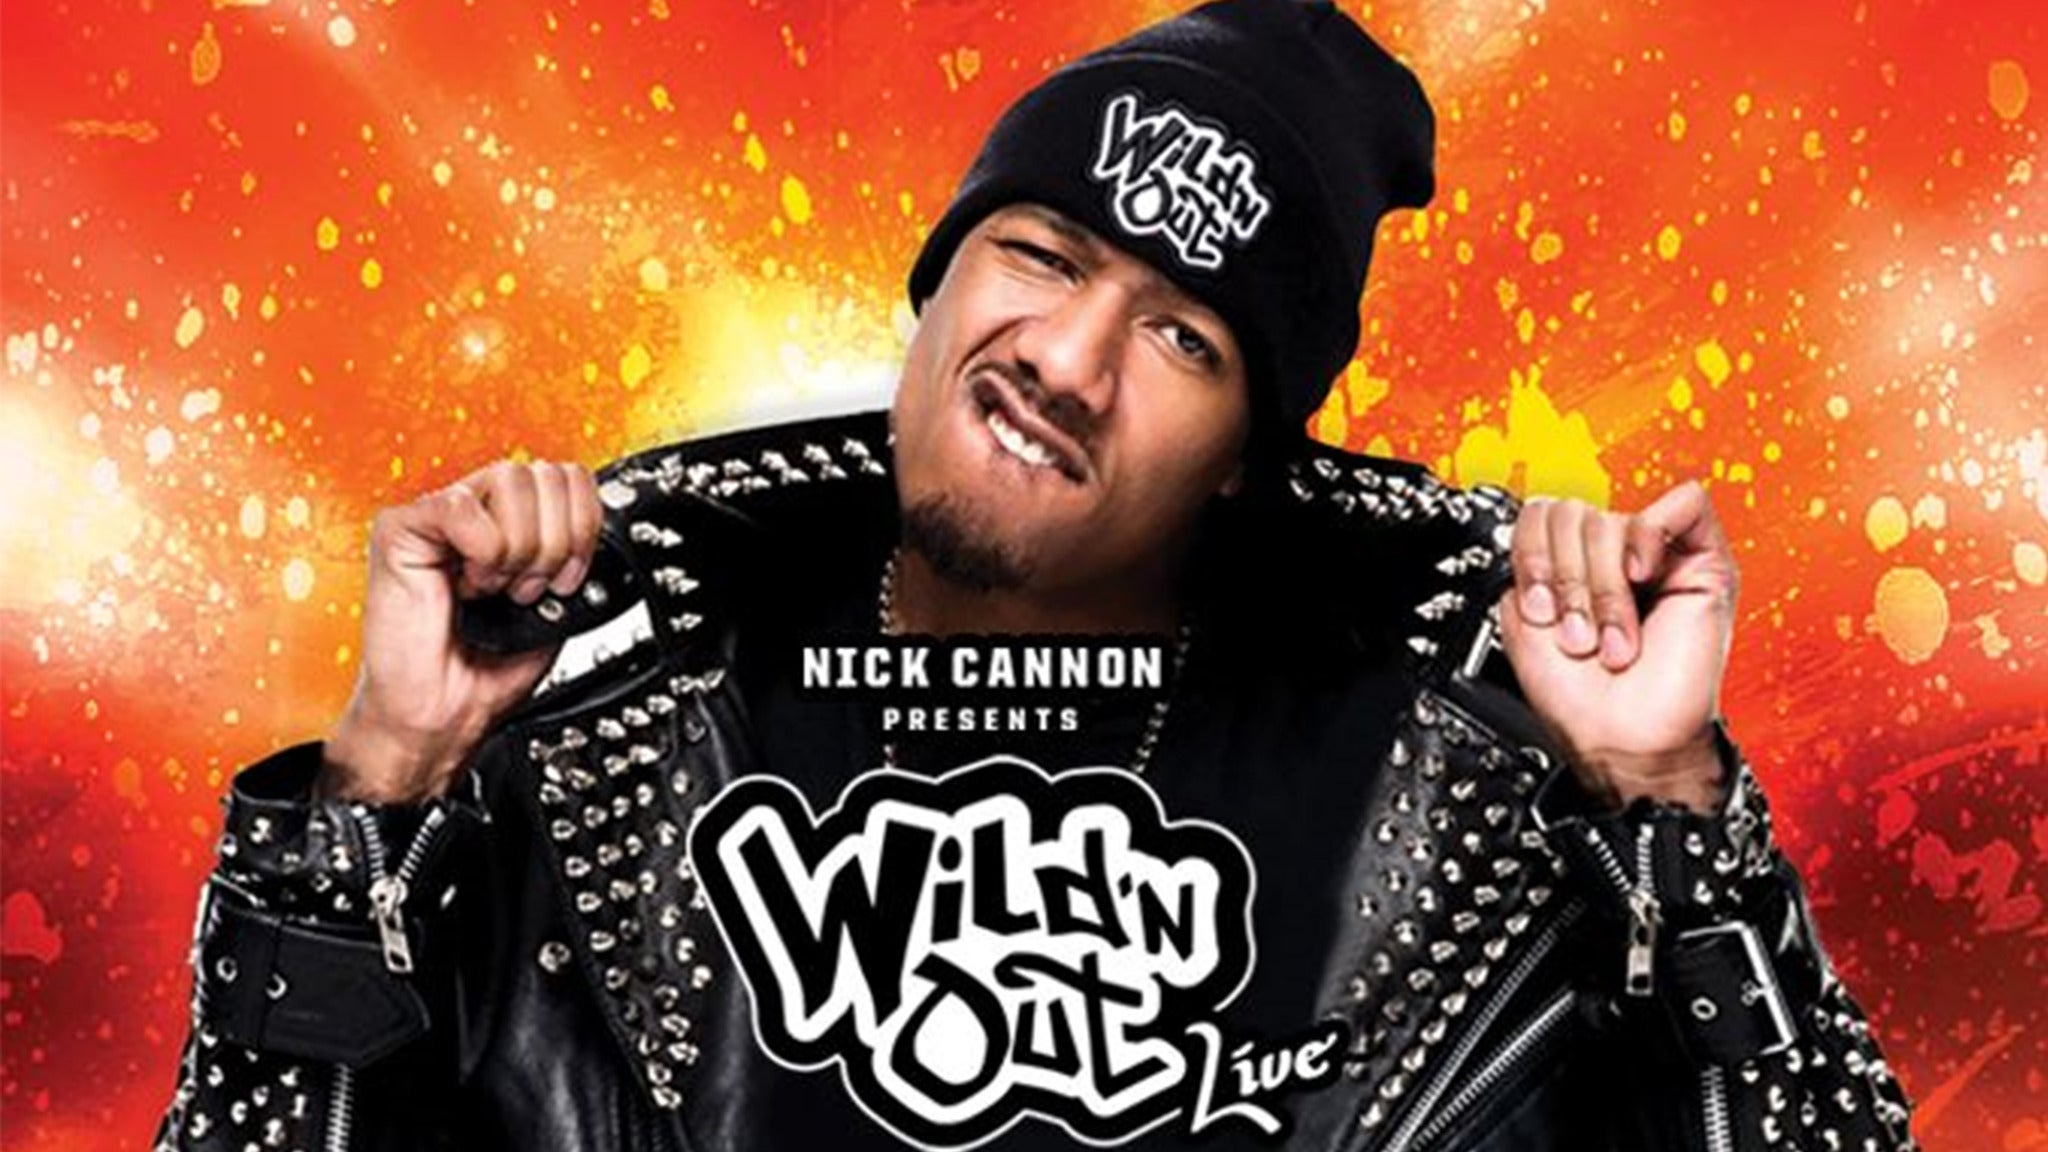 NICK CANNON PRESENTS: WILD 'N OUT LIVE at Moda Center